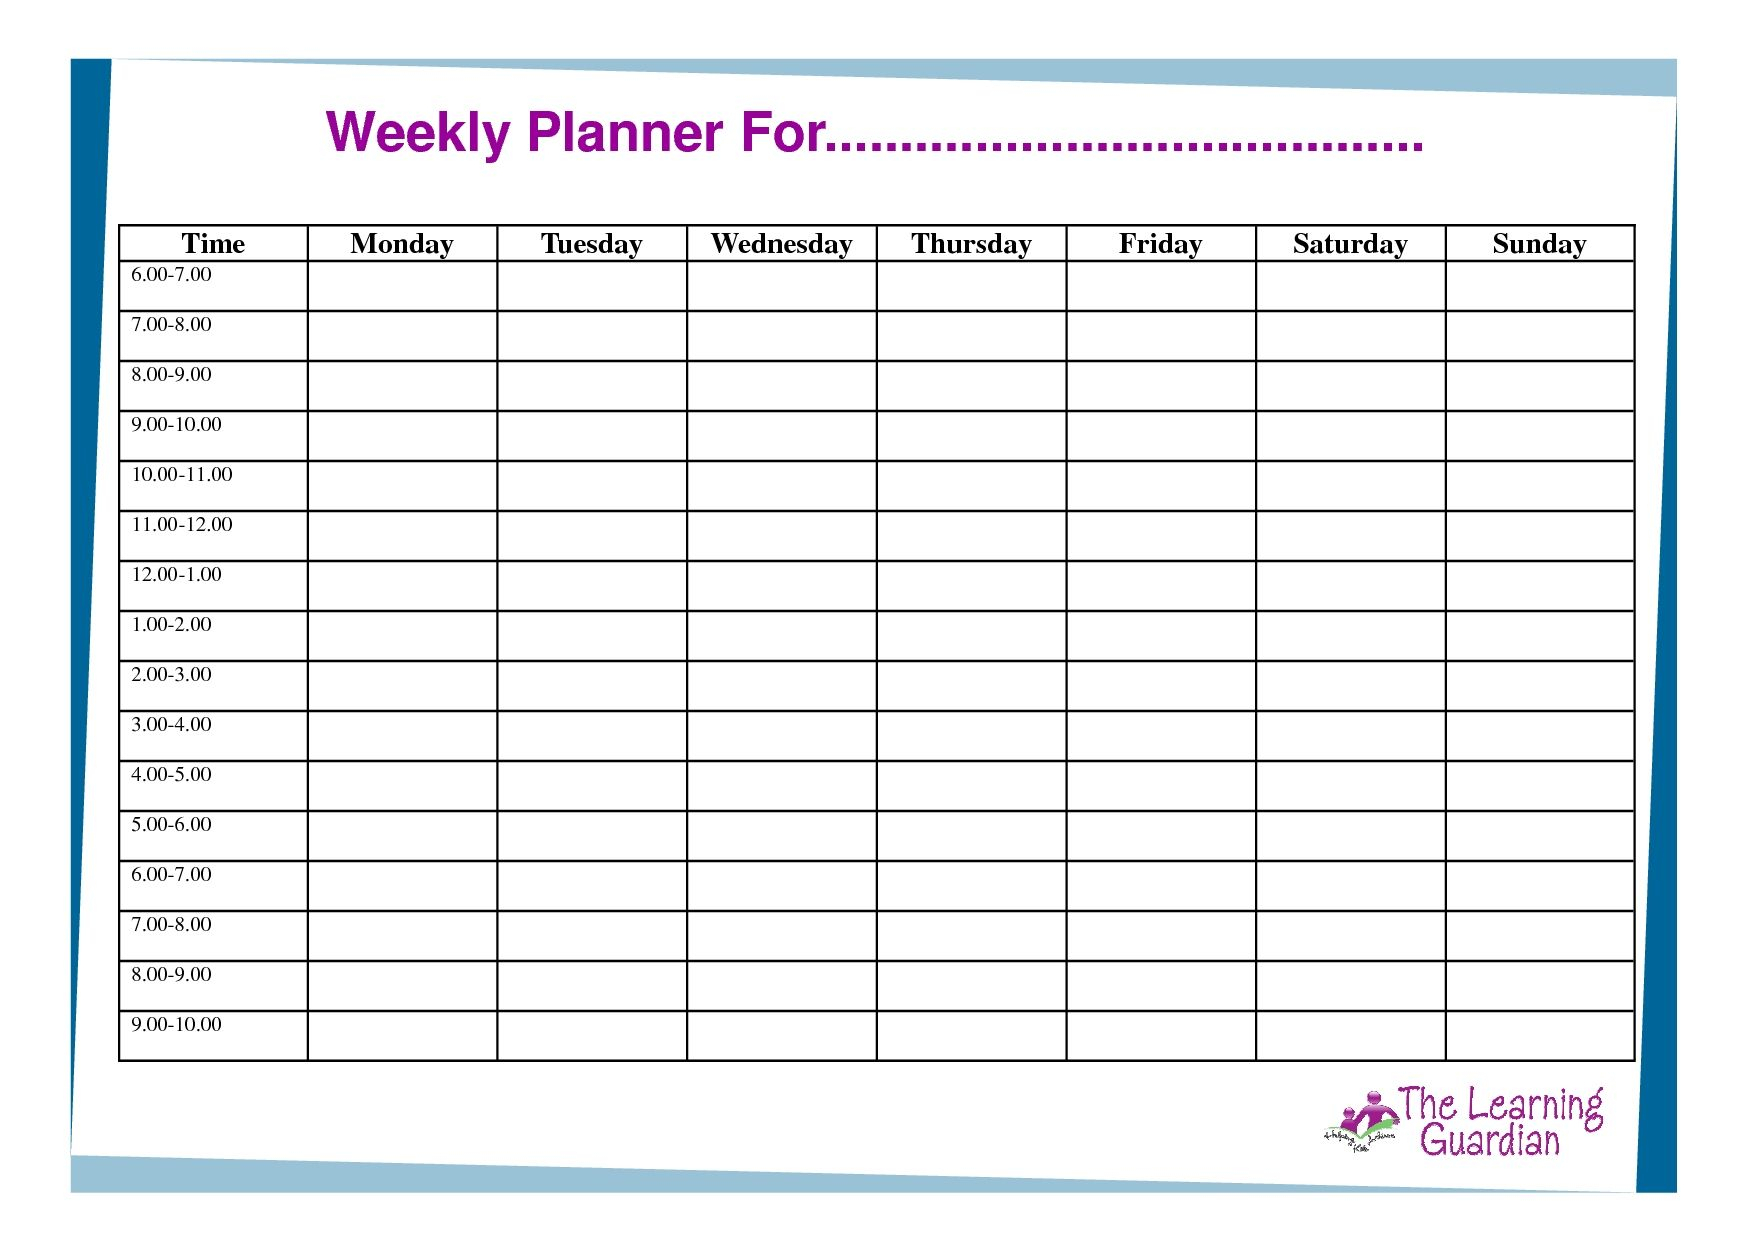 Free Printable Weekly Calendar Templates Planner For Time Incredible intended for 7 Day Week Blank Calendar Printable